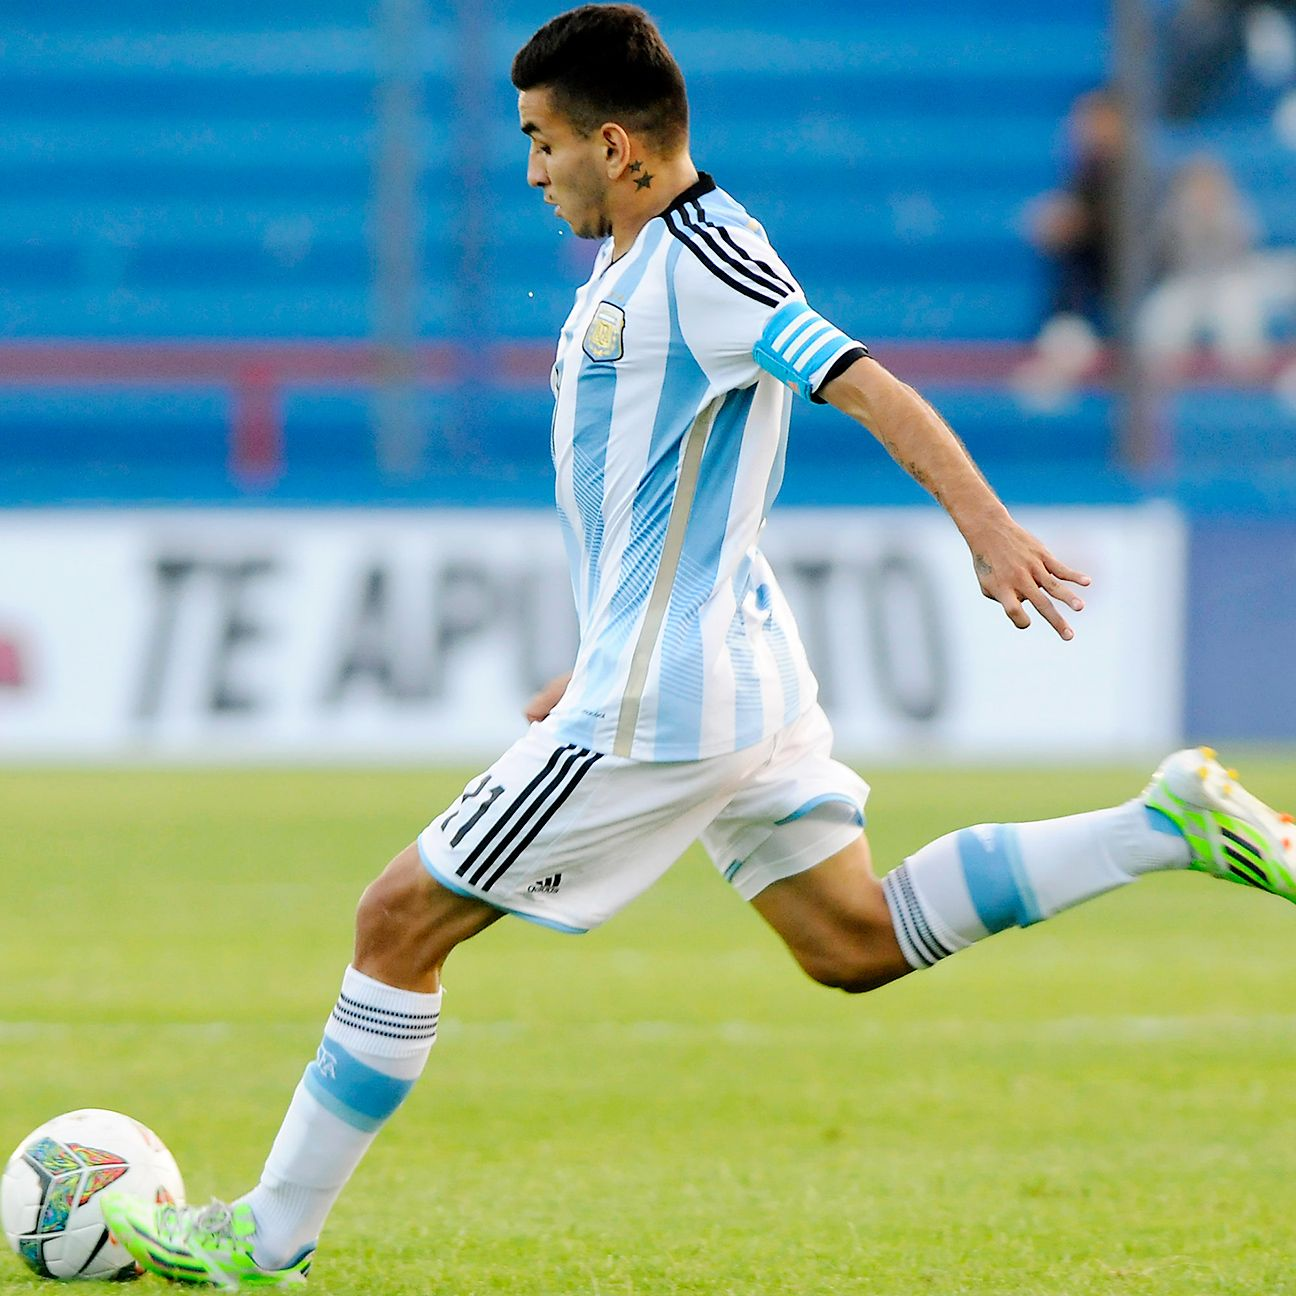 Angel Correa has been Argentina's key playmaker at the South American Under-20 Championships.